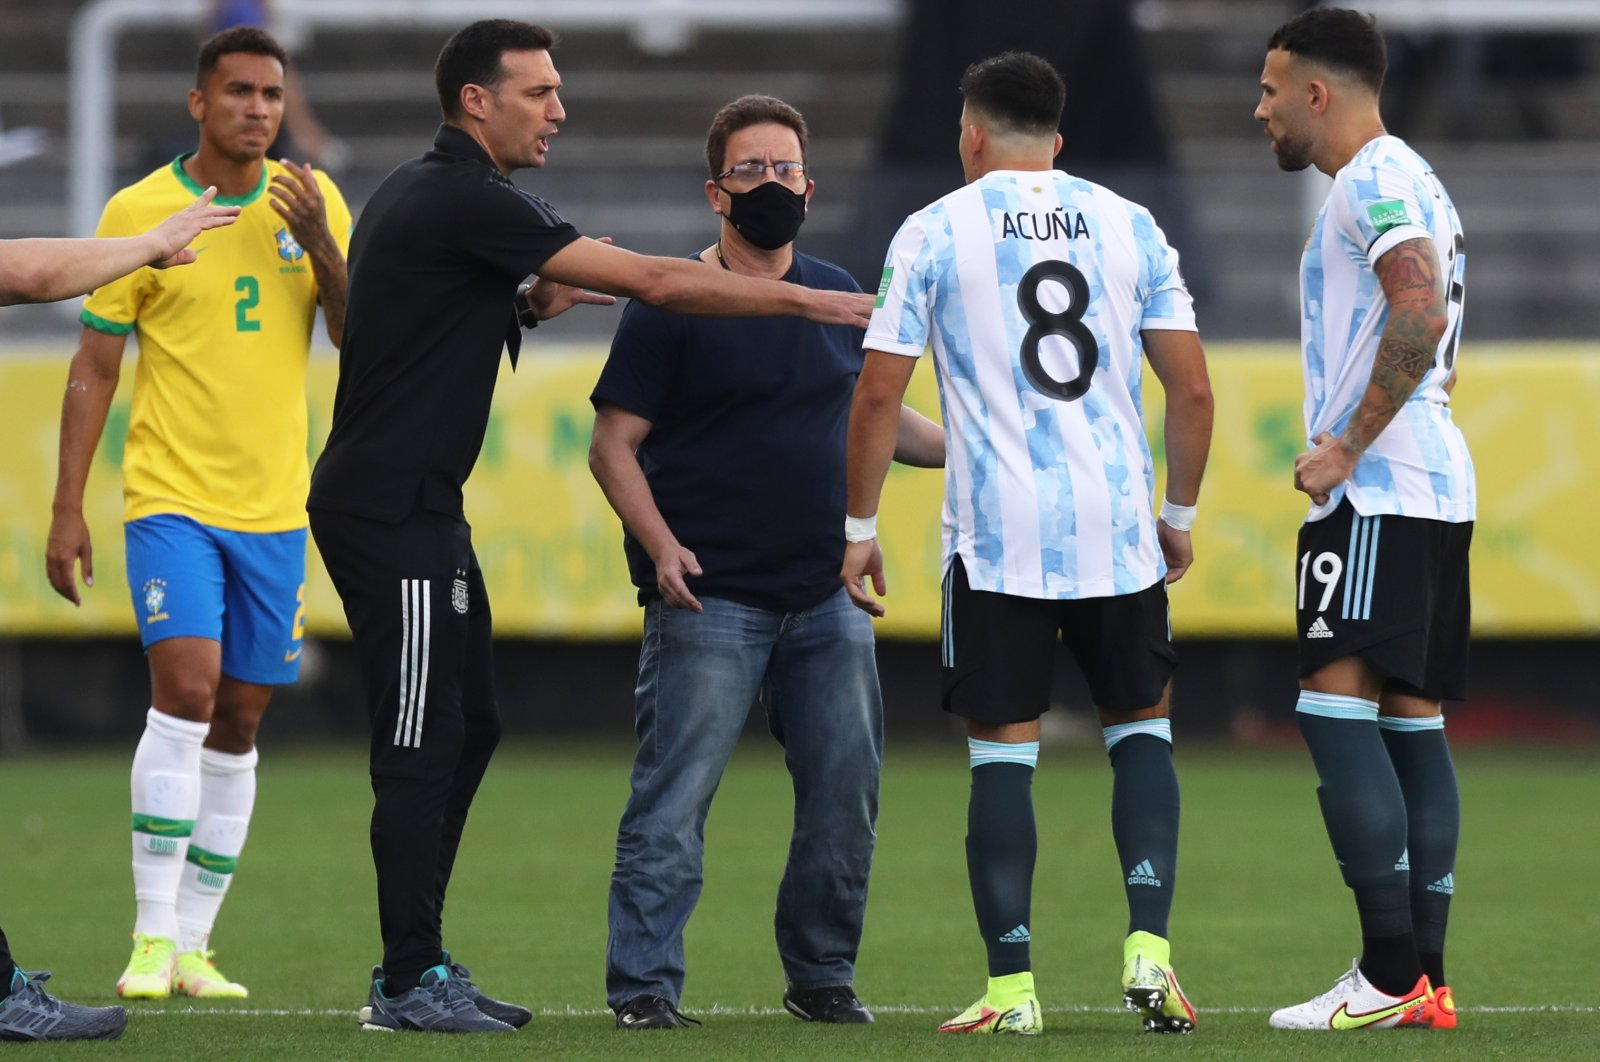 Argentina's Marcos Acuna (2nd R), Nicolas Otamendi (R) argue with a Brazilian health official who invaded the pitch claiming three Argentine players broke quarantine rules, Arena Corinthians, Sao Paulo, Brazil, Sept. 5, 2021. (Reuters Photo)